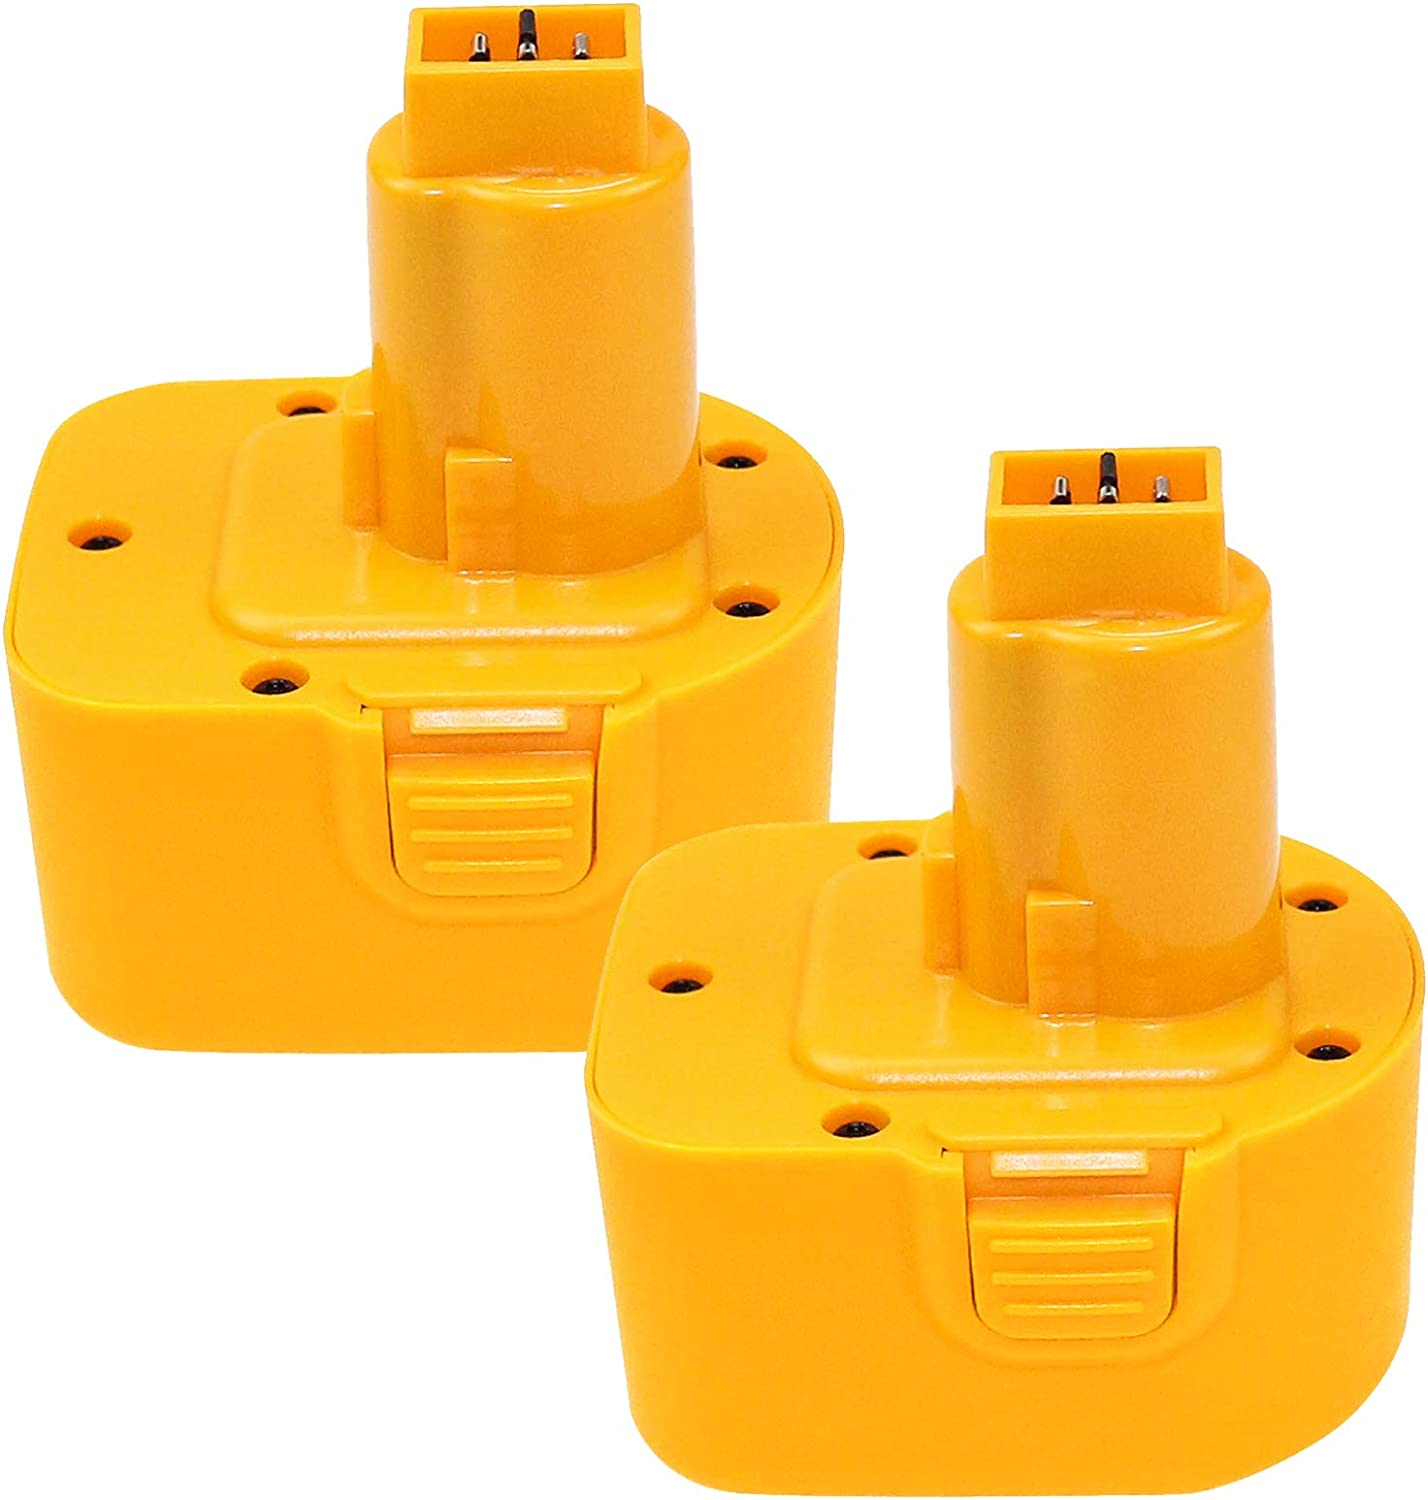 2 Packs 3.6Ah Replacement Battery with Bat Dewalt 定番キャンバス Compatible 12V 信用